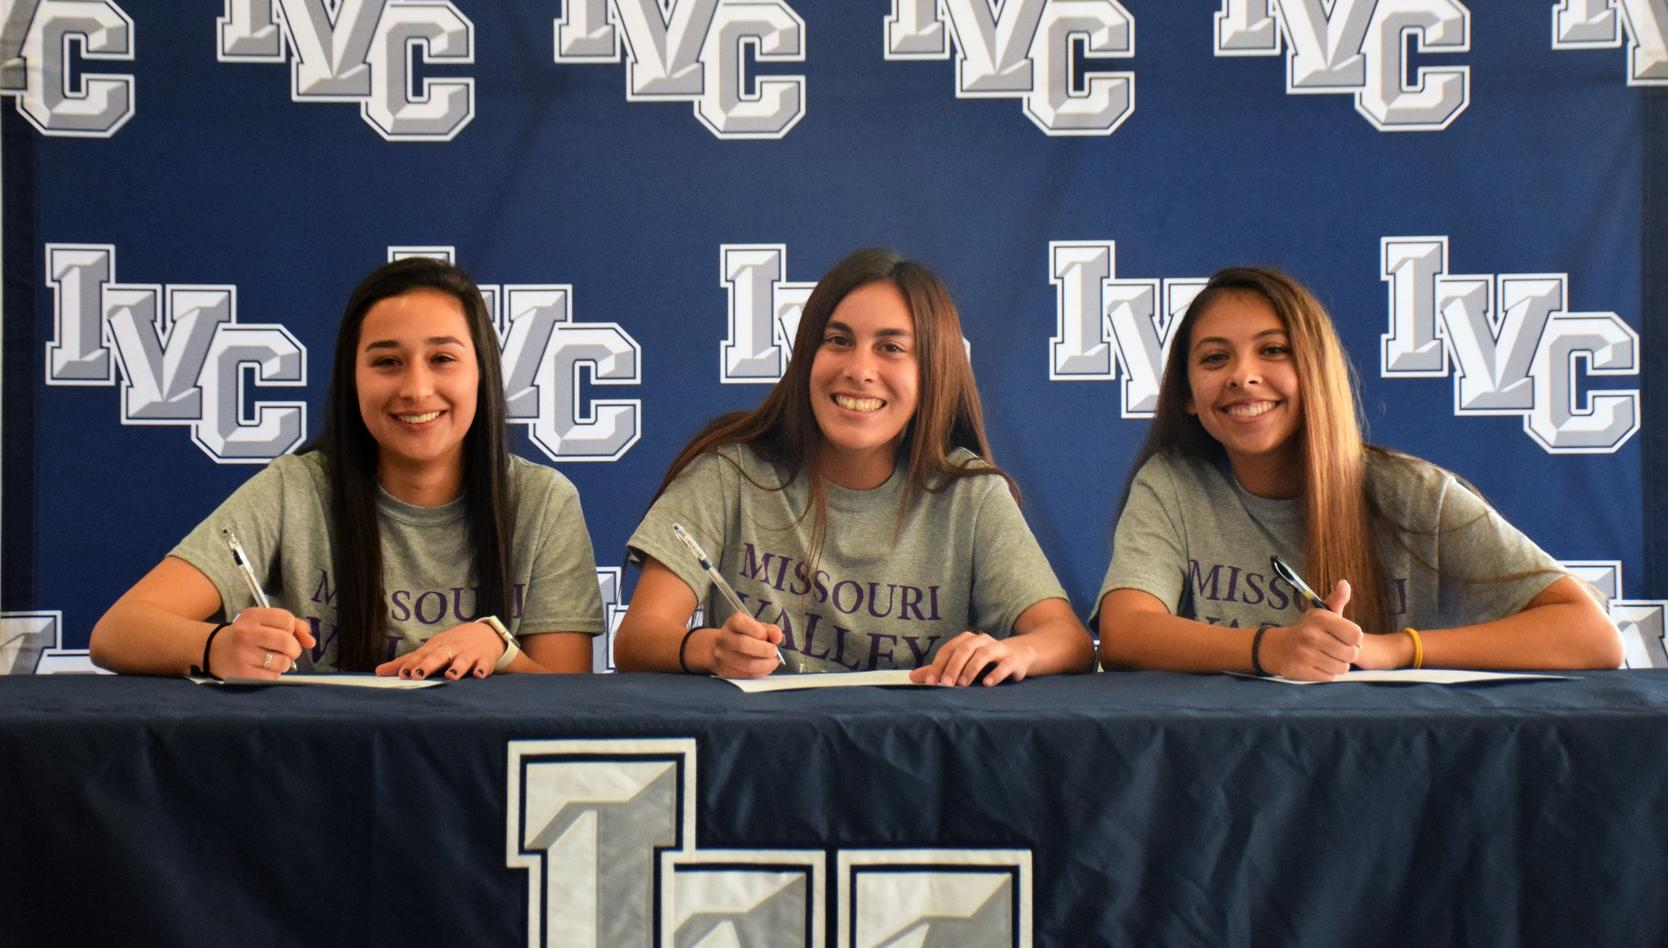 Three women's soccer players headed to Missouri Valley